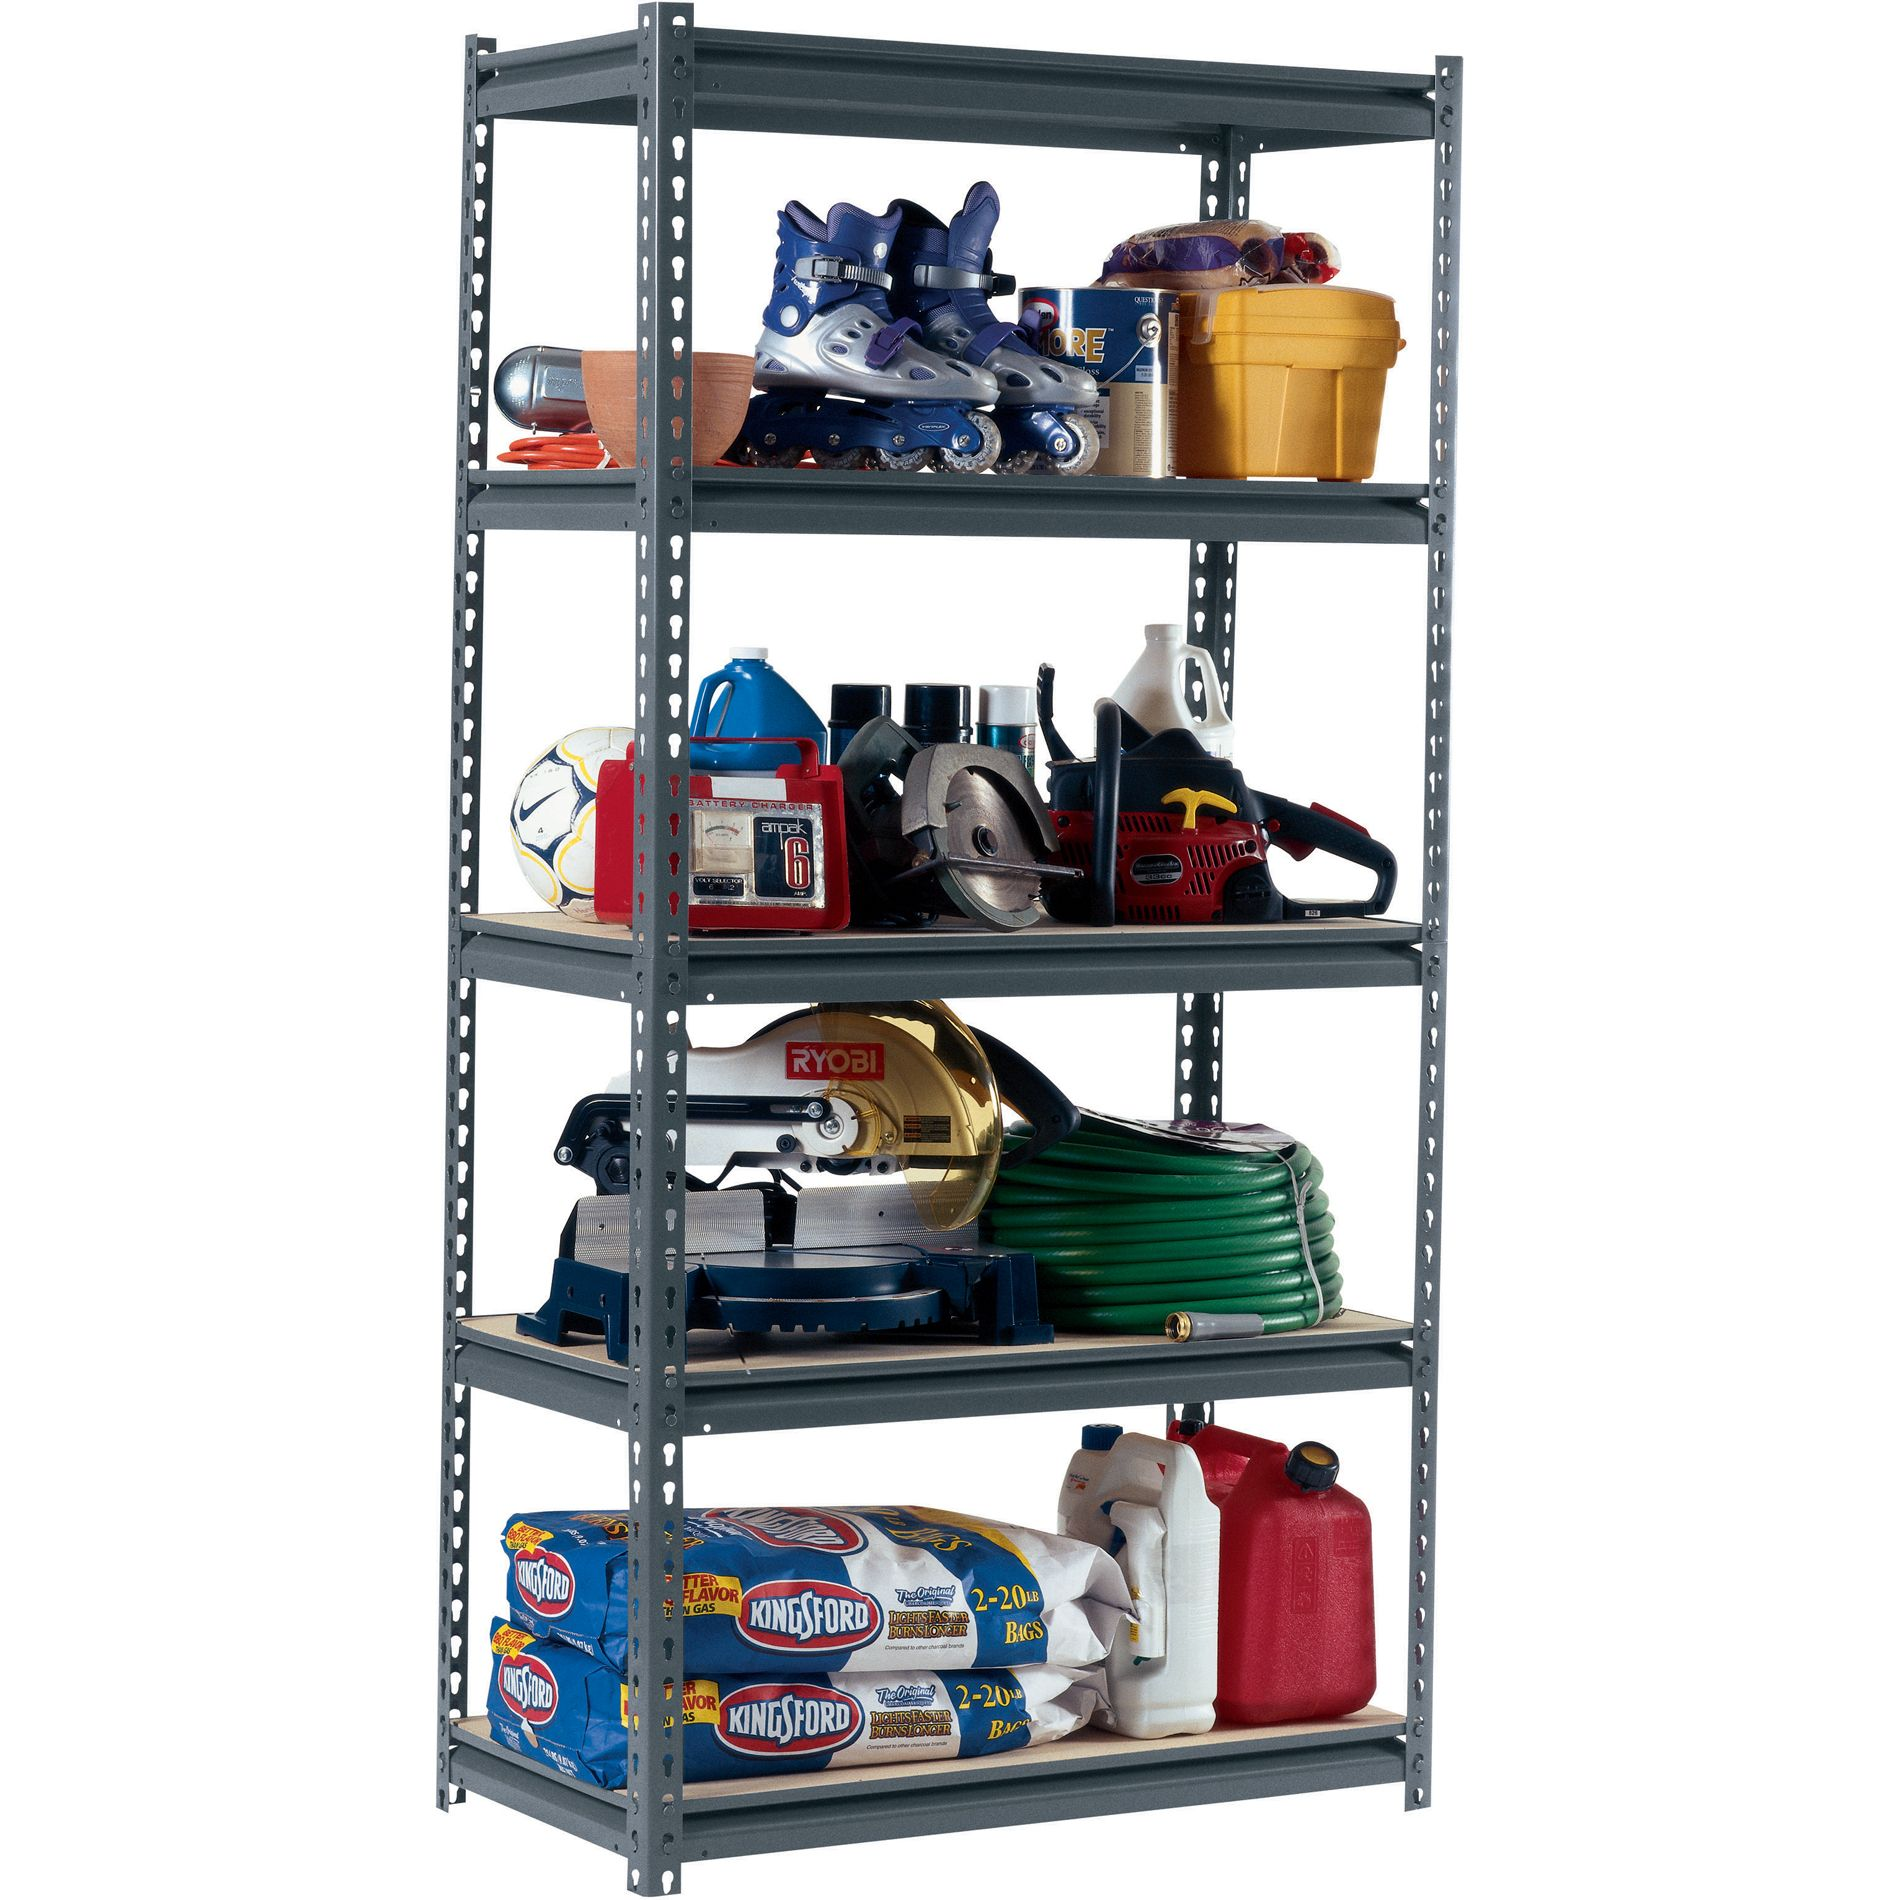 Edsal 5-Shelf Heavy Duty Steel Shelving